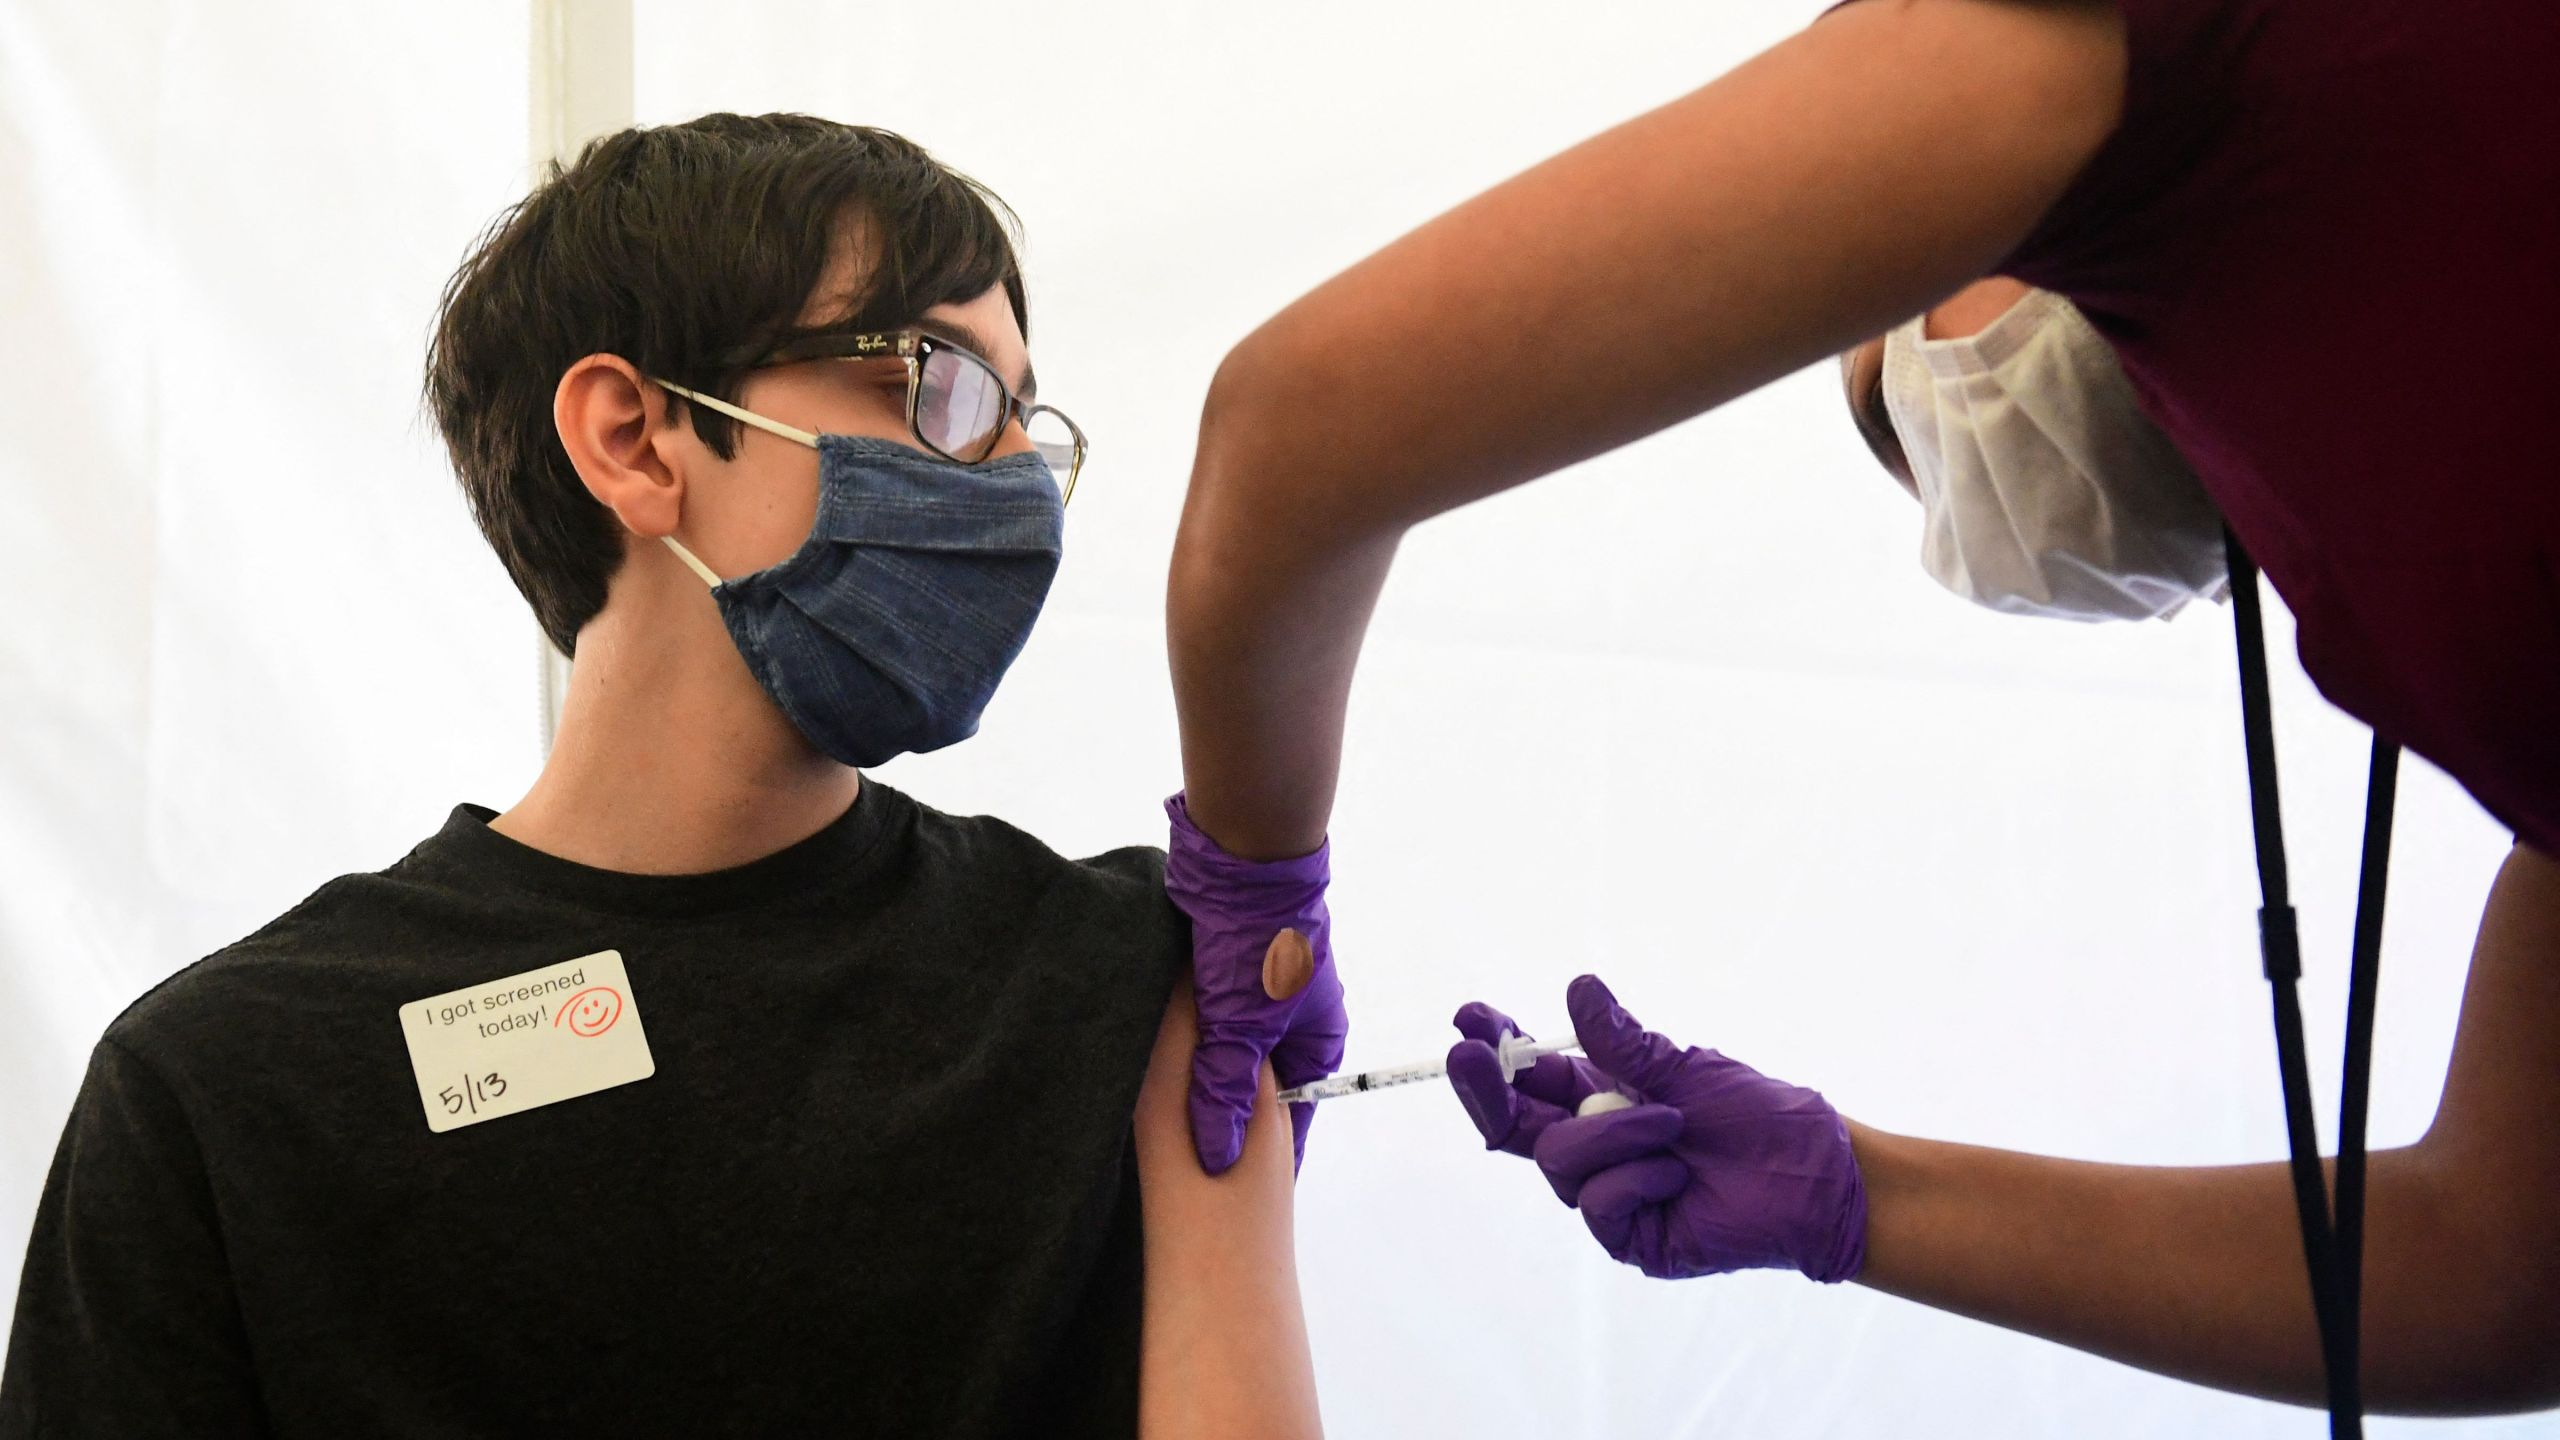 Photo of a boy receiving a COVID-19 vaccine